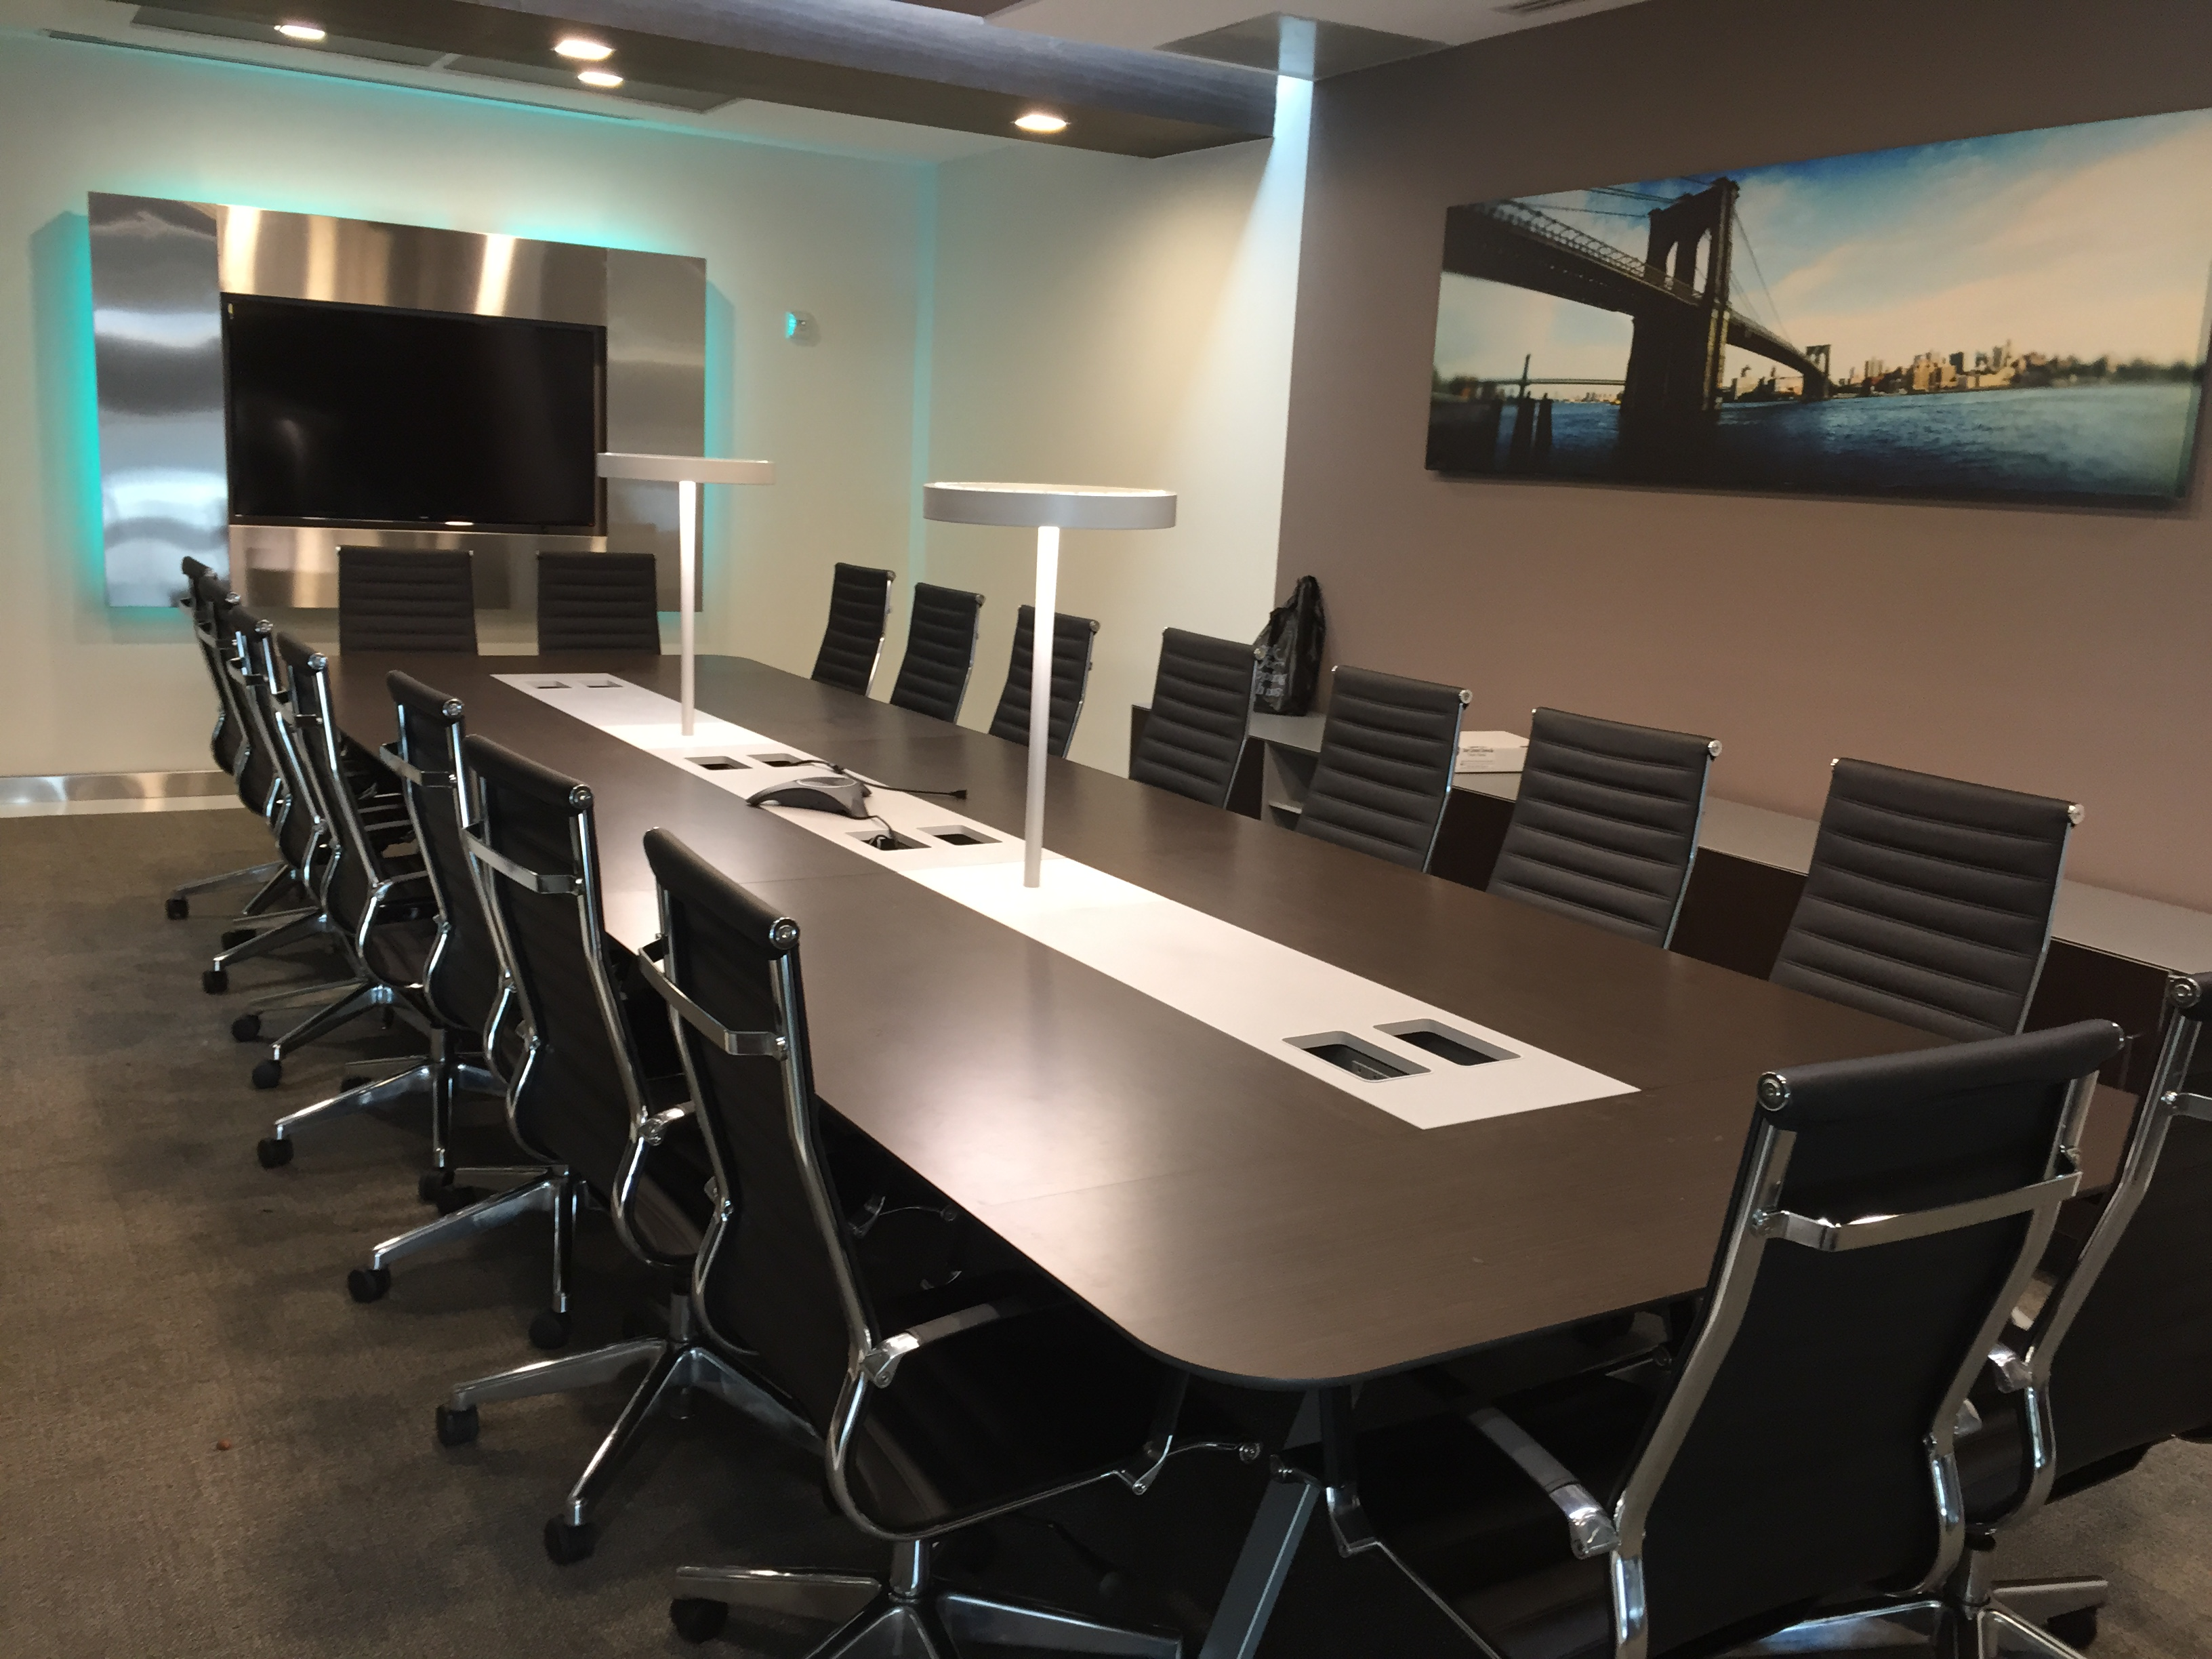 Credenza Conference Room : Large midtown glass conference room for 20 meeting d new york